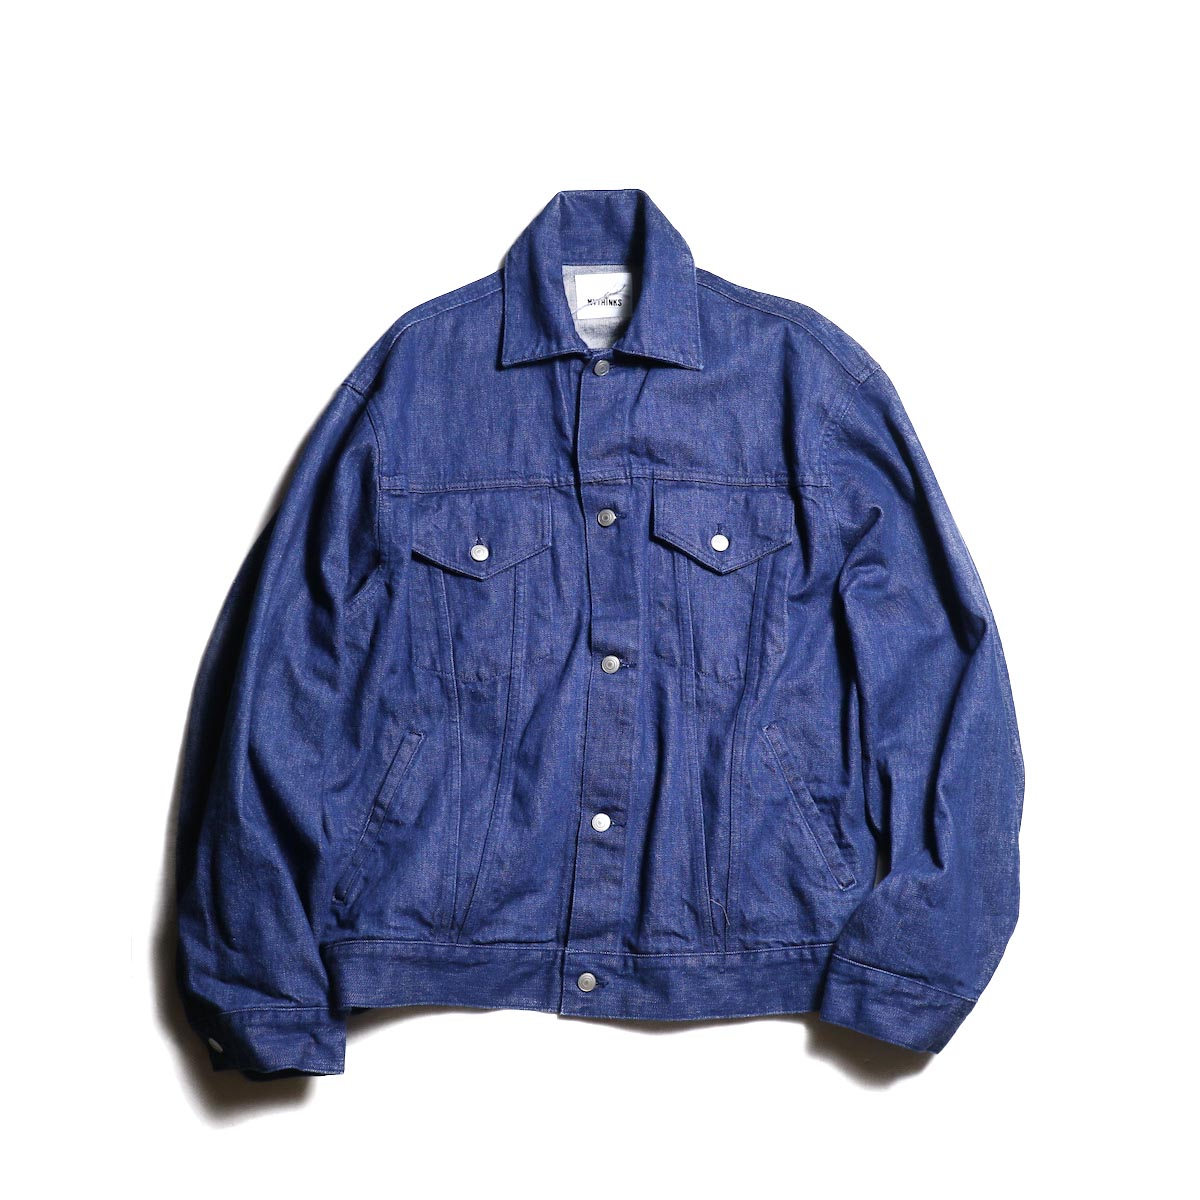 MYTHINKS / MY BIG G-Jacket (Autumn Blue) 正面